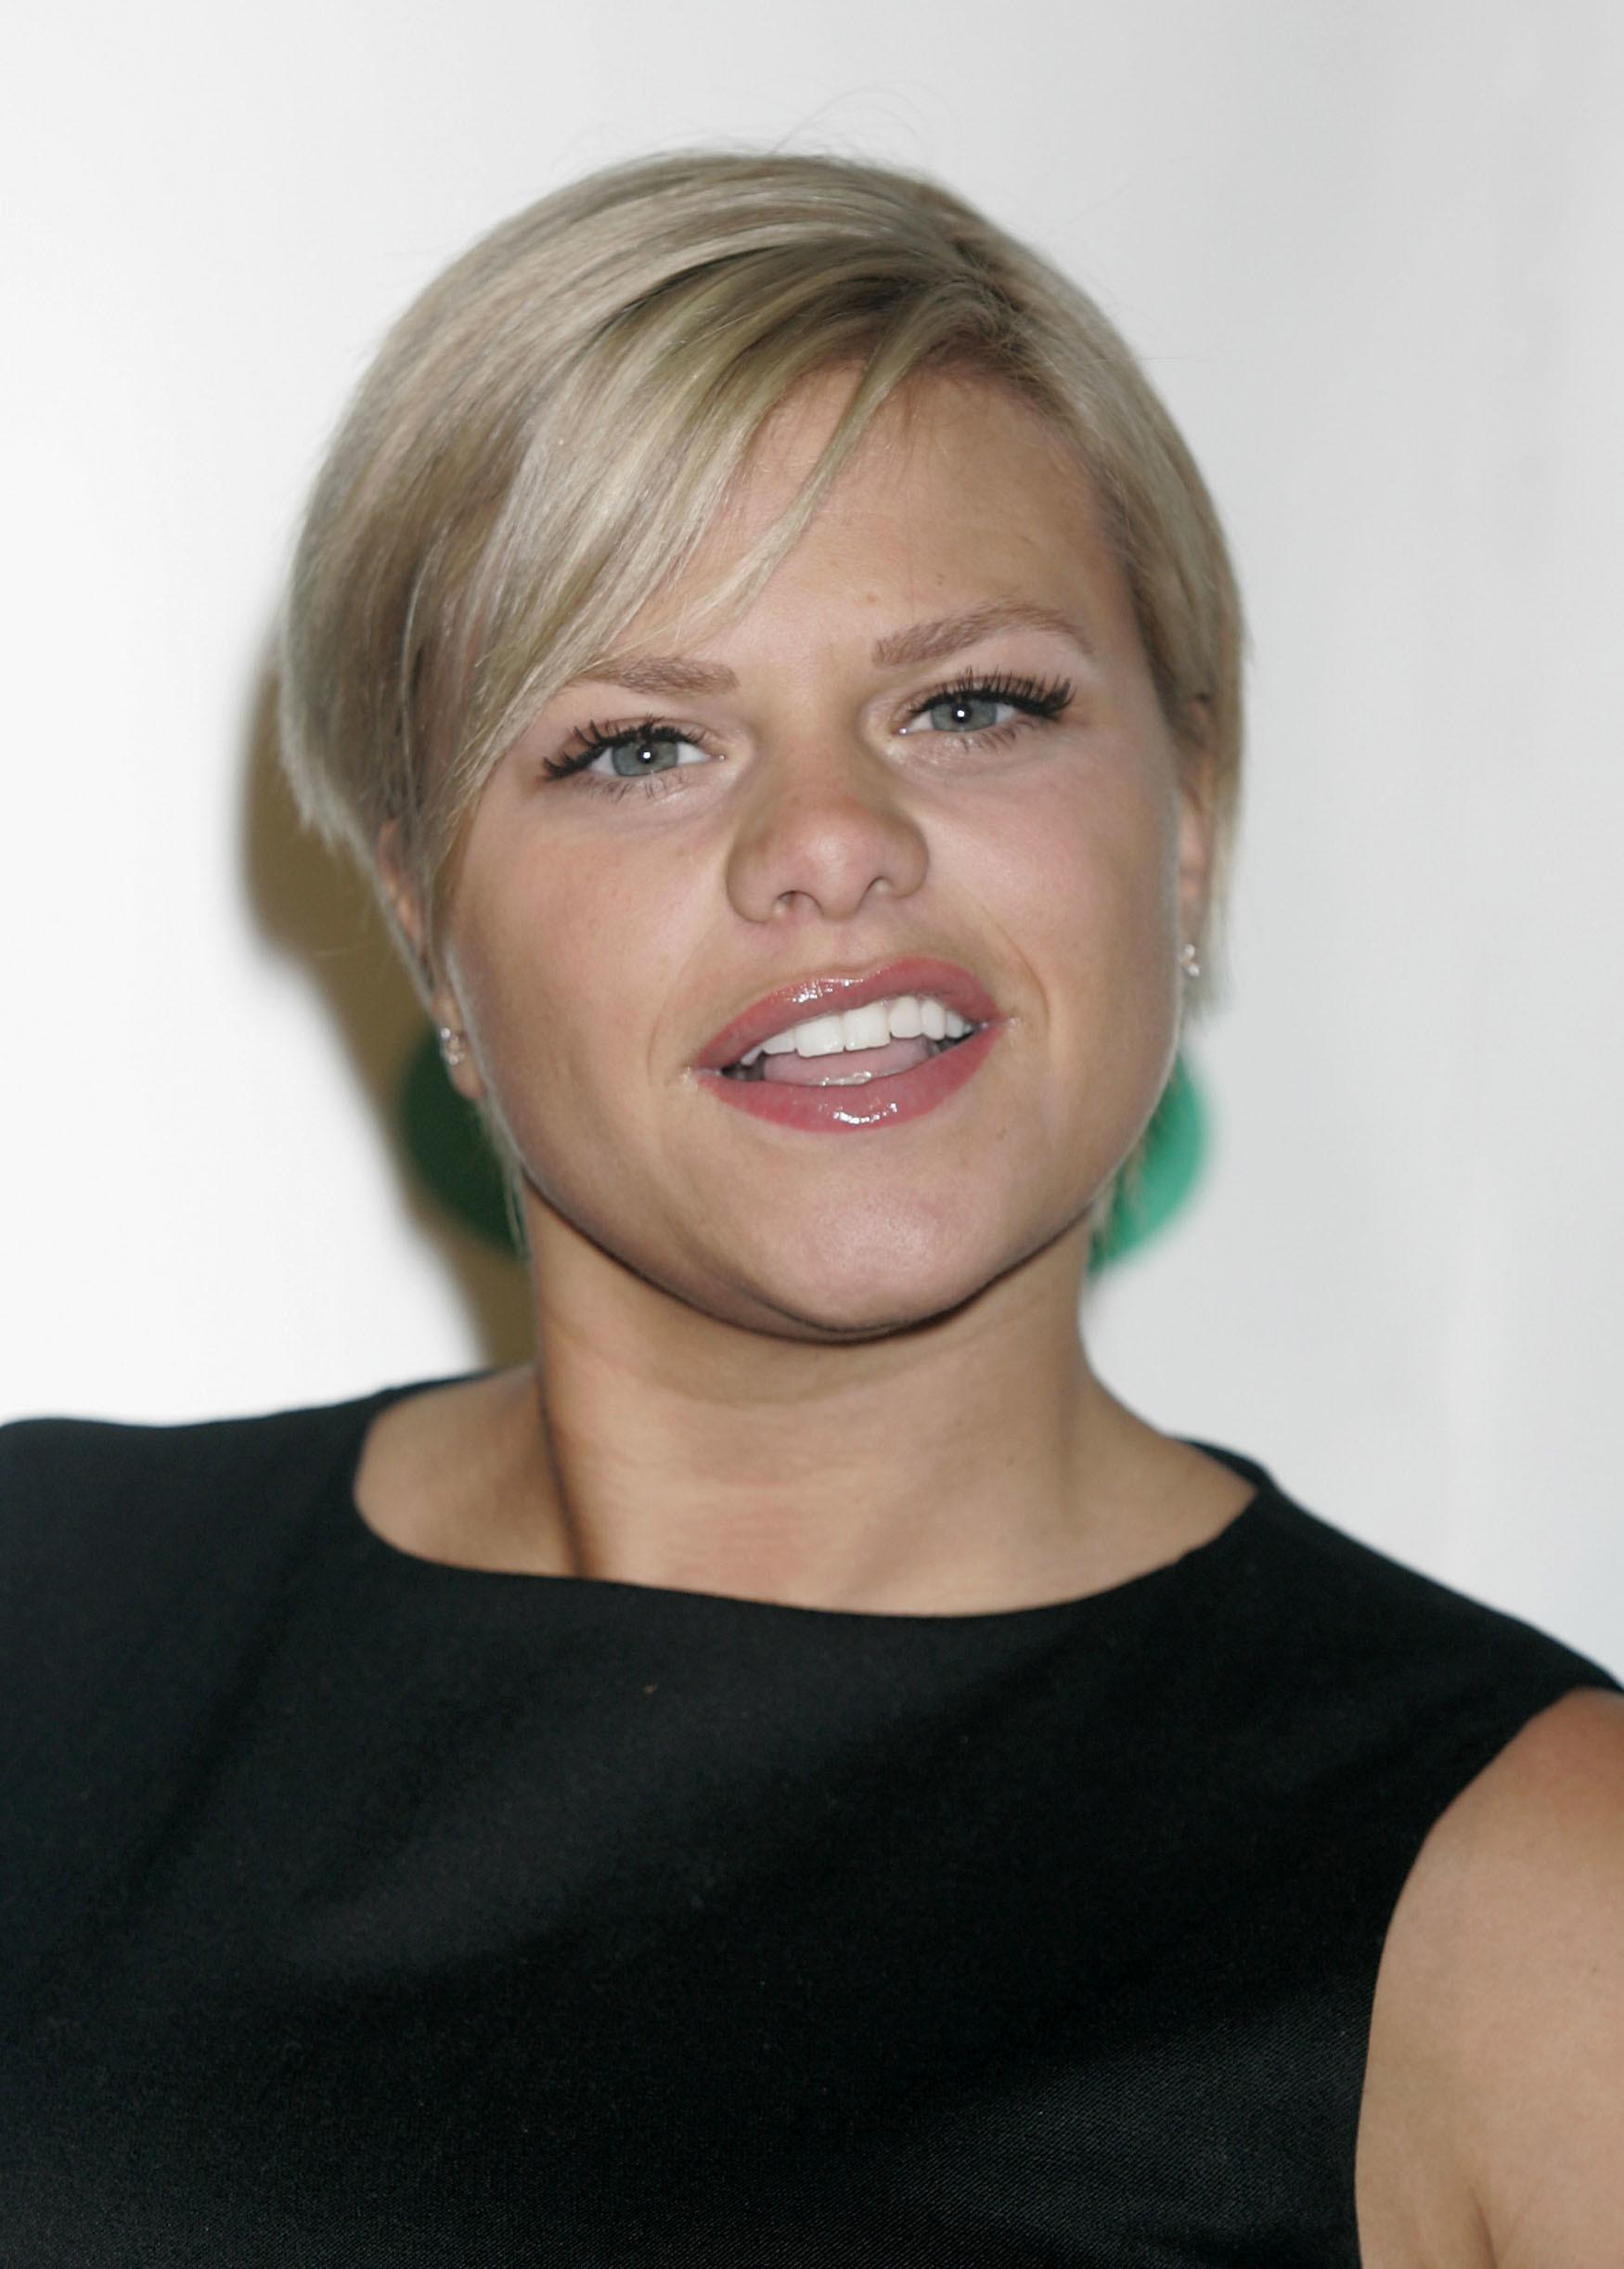 Jade Goody arrives for the Specsavers Spectacle Wearer of The Year Awards, at The Waldorf Hilton Hotel in central London.